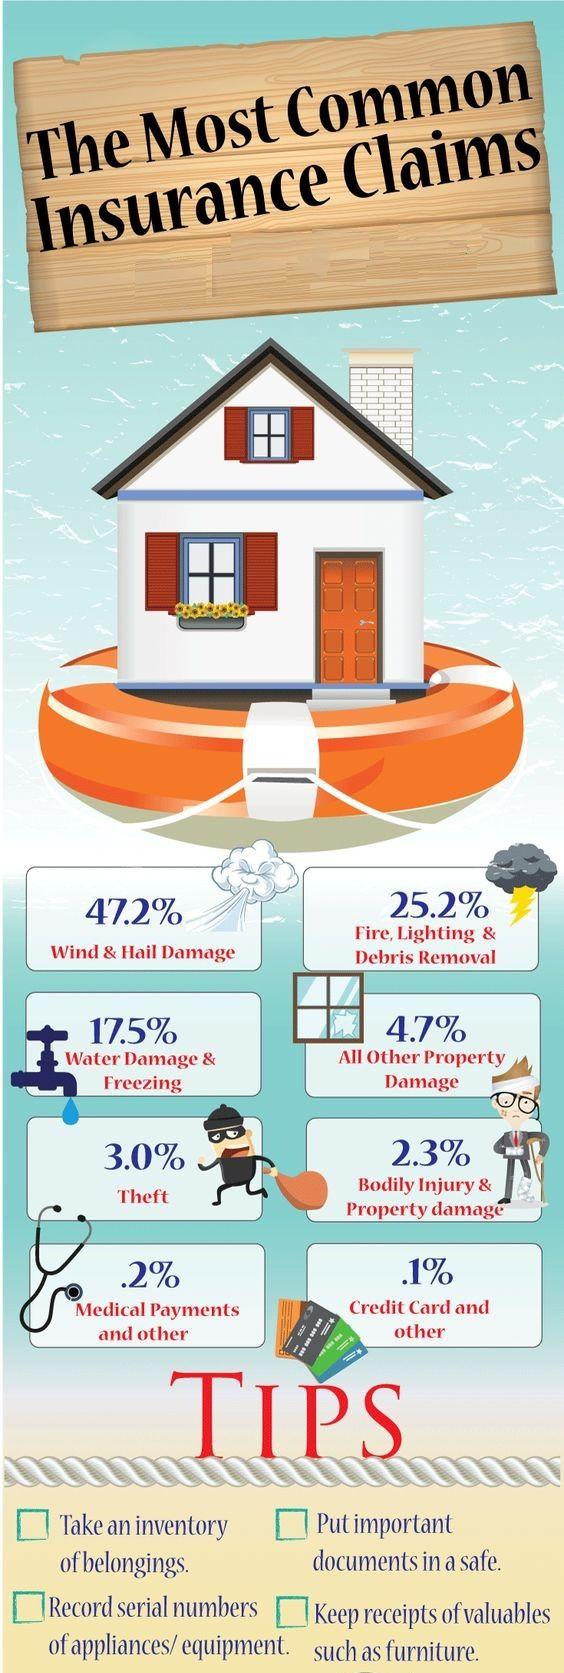 The Most Common Insurance Claims Infographic